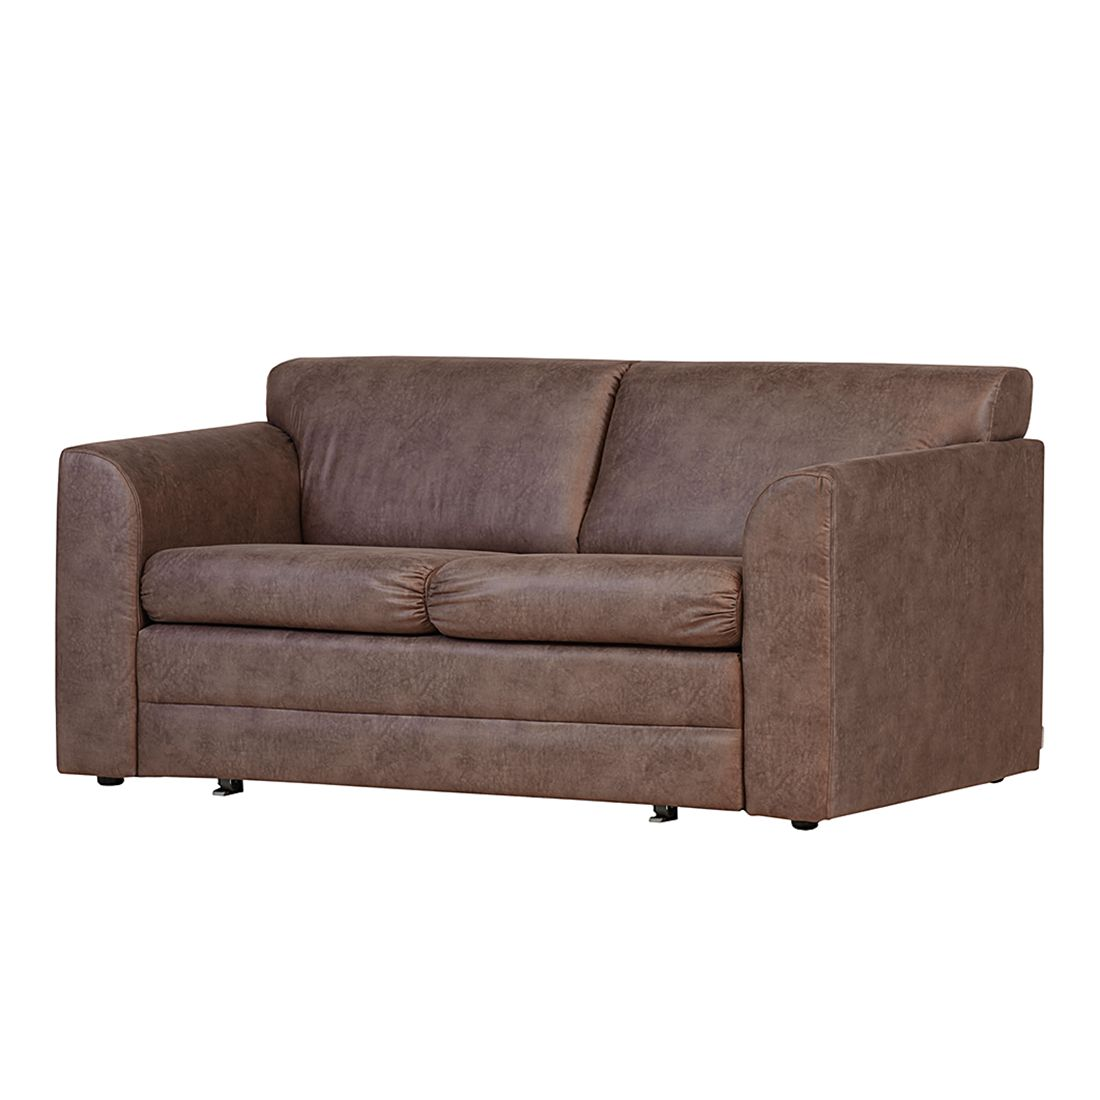 Canap convertible helena aspect cuir marron roomscape for Transport canape